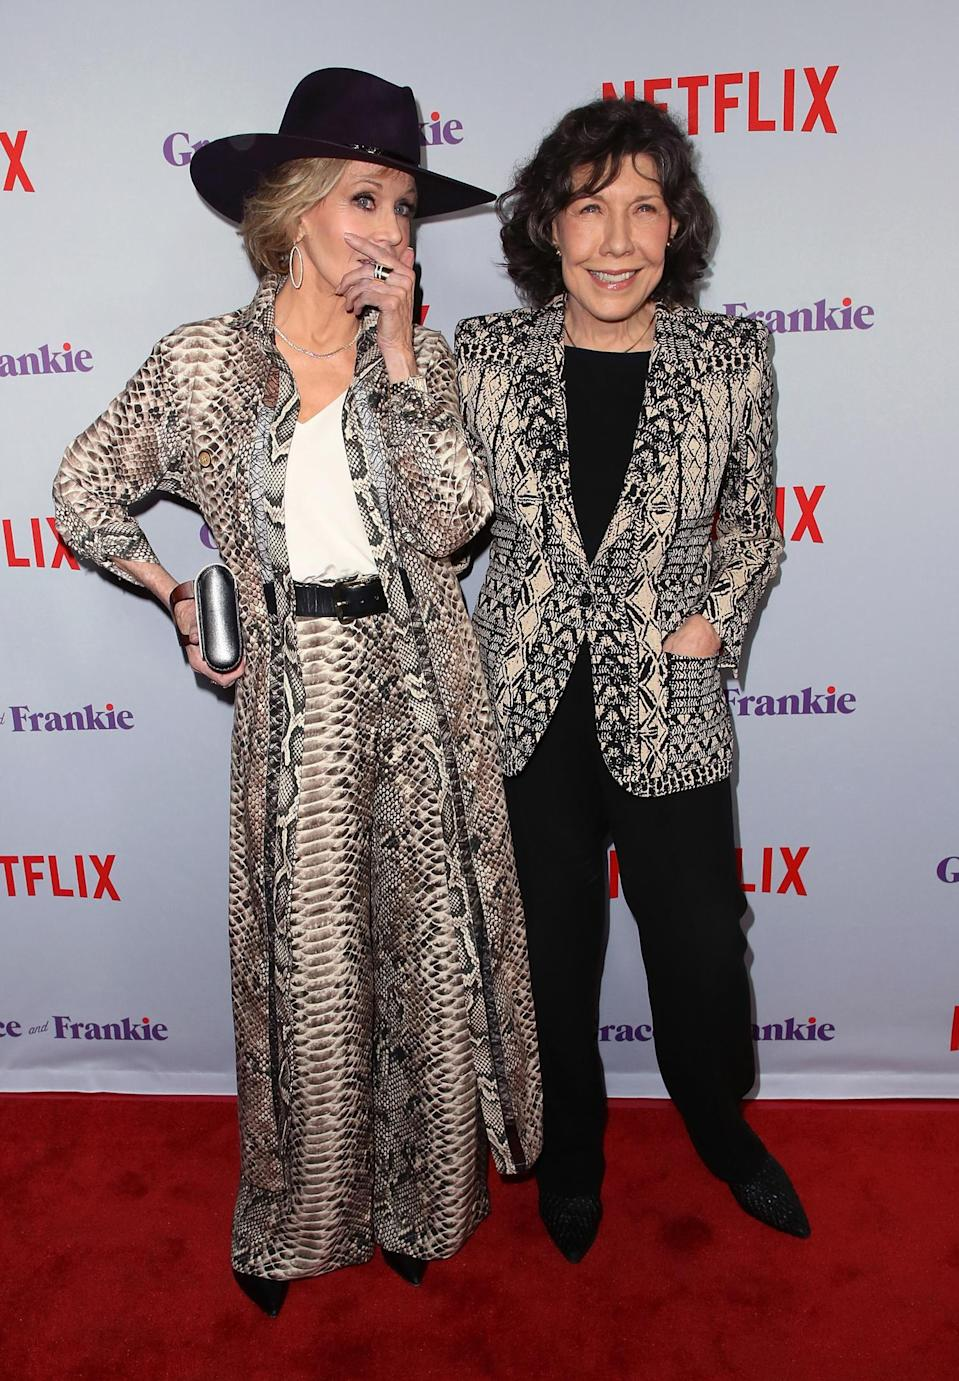 """Jane Fonda attends the premiere of Netflix's """"Grace and Frankie"""" Season 4 at ArcLight Cinemas on January 18, 2018 in Culver City, California. (Photo: Getty Images)"""